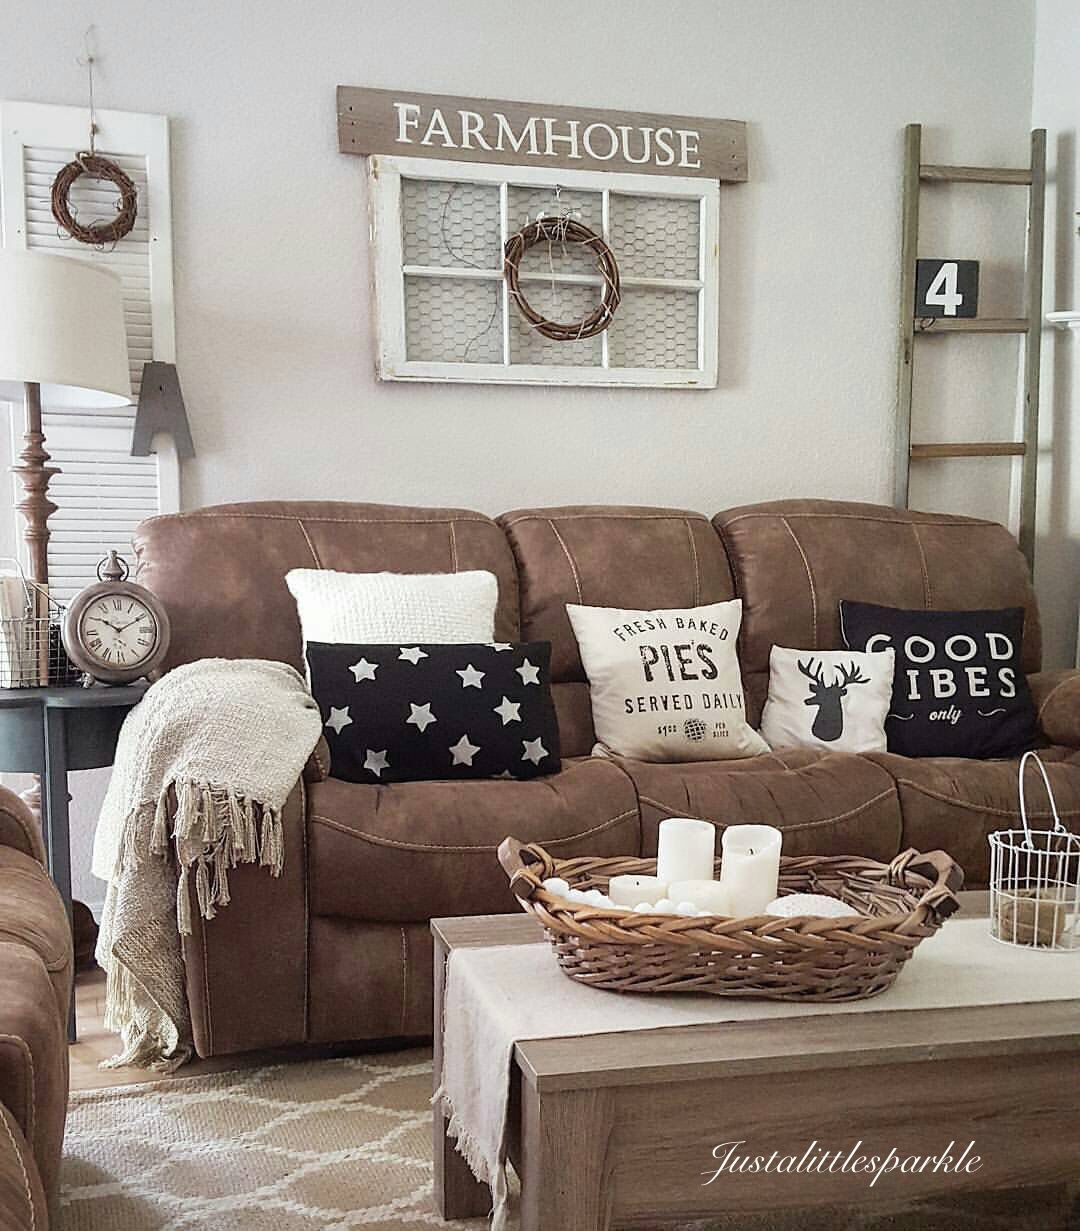 Brown Couch Rustic Home Rustic Living Room Farmhouse Farmhouse Decor Living Room Farm House Living Room Farmhouse Style Living Room